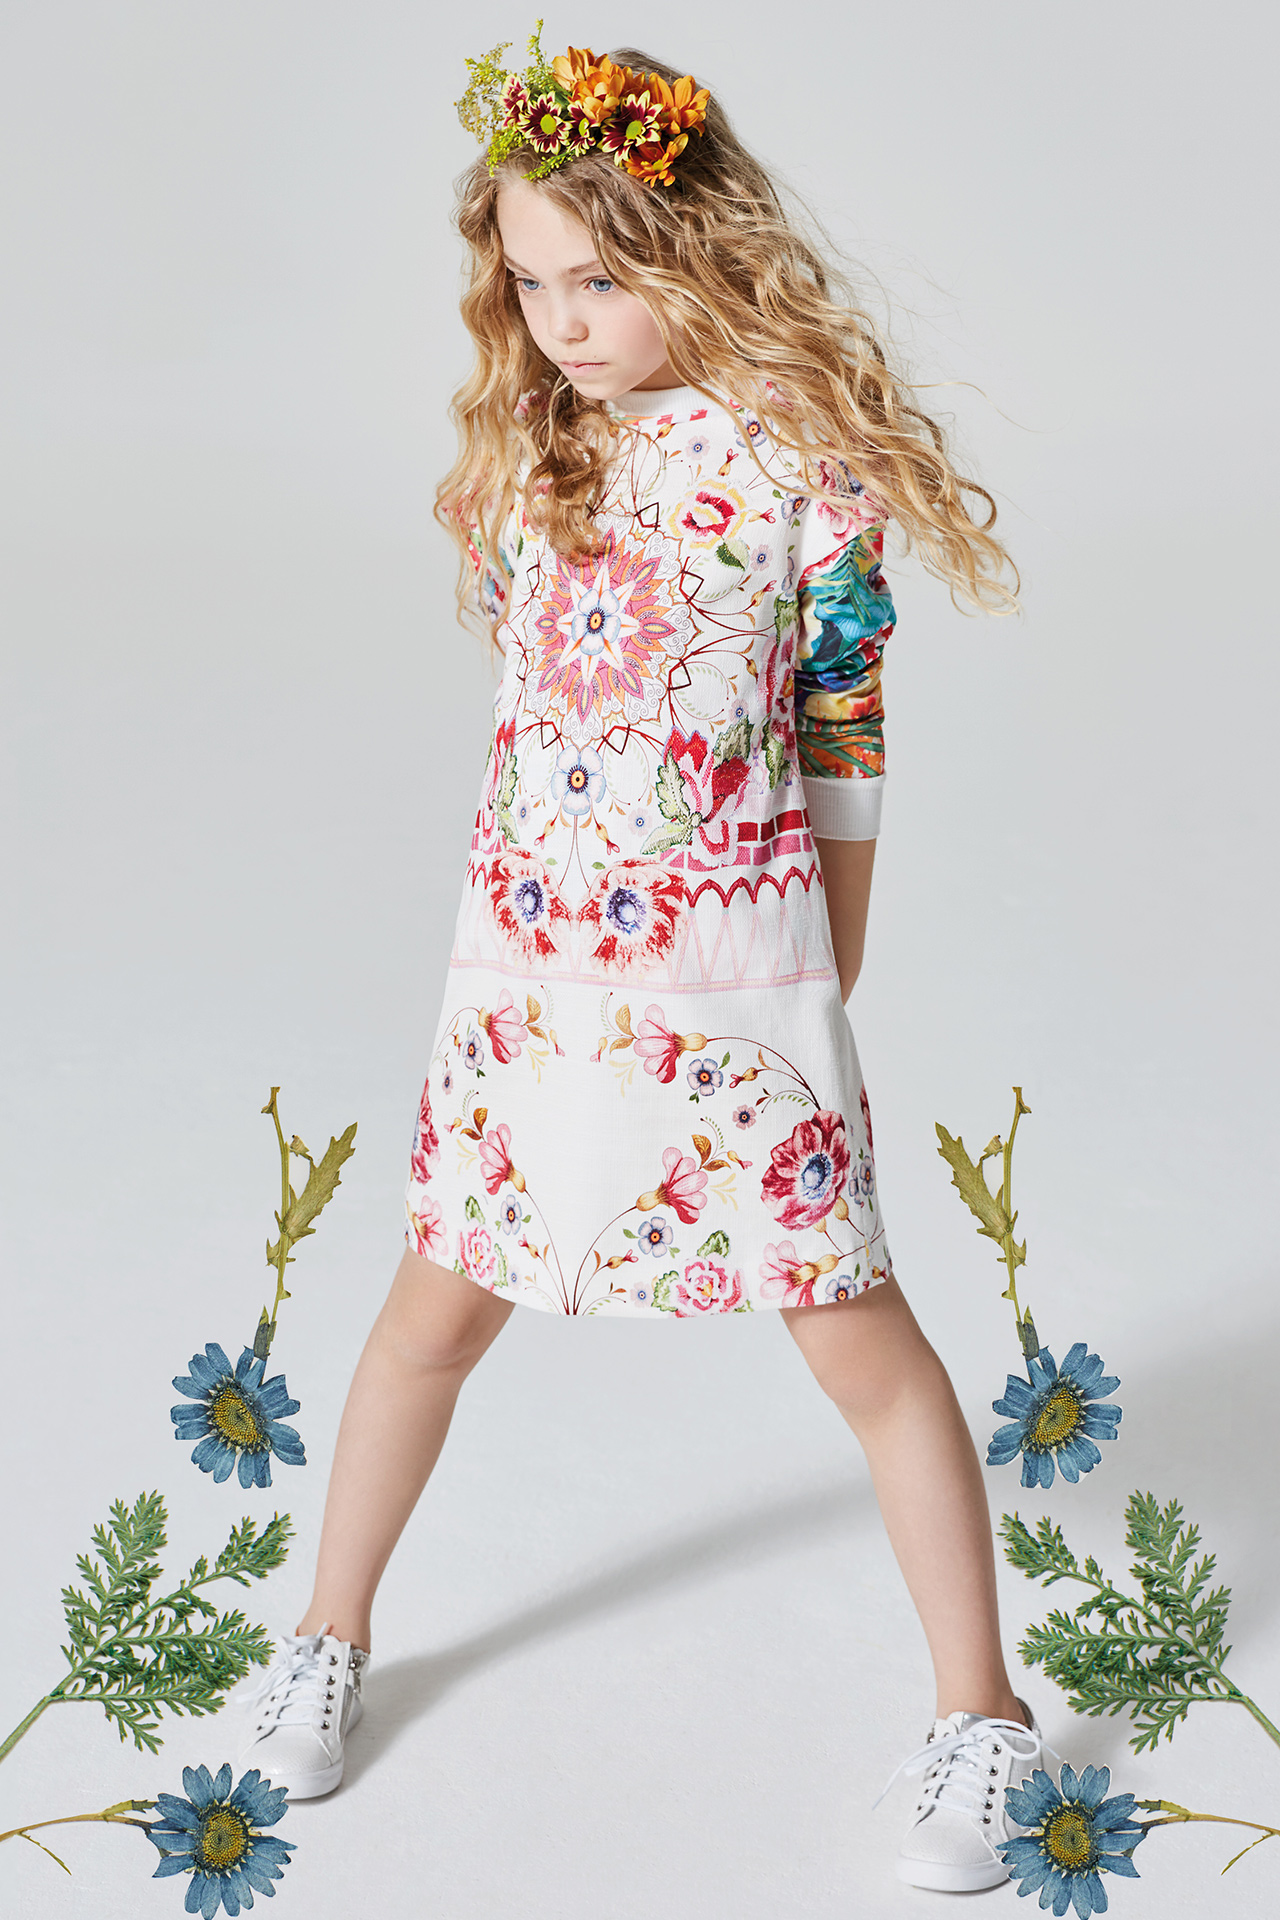 Floral kids fashion girl 7 Emma Tunbridge